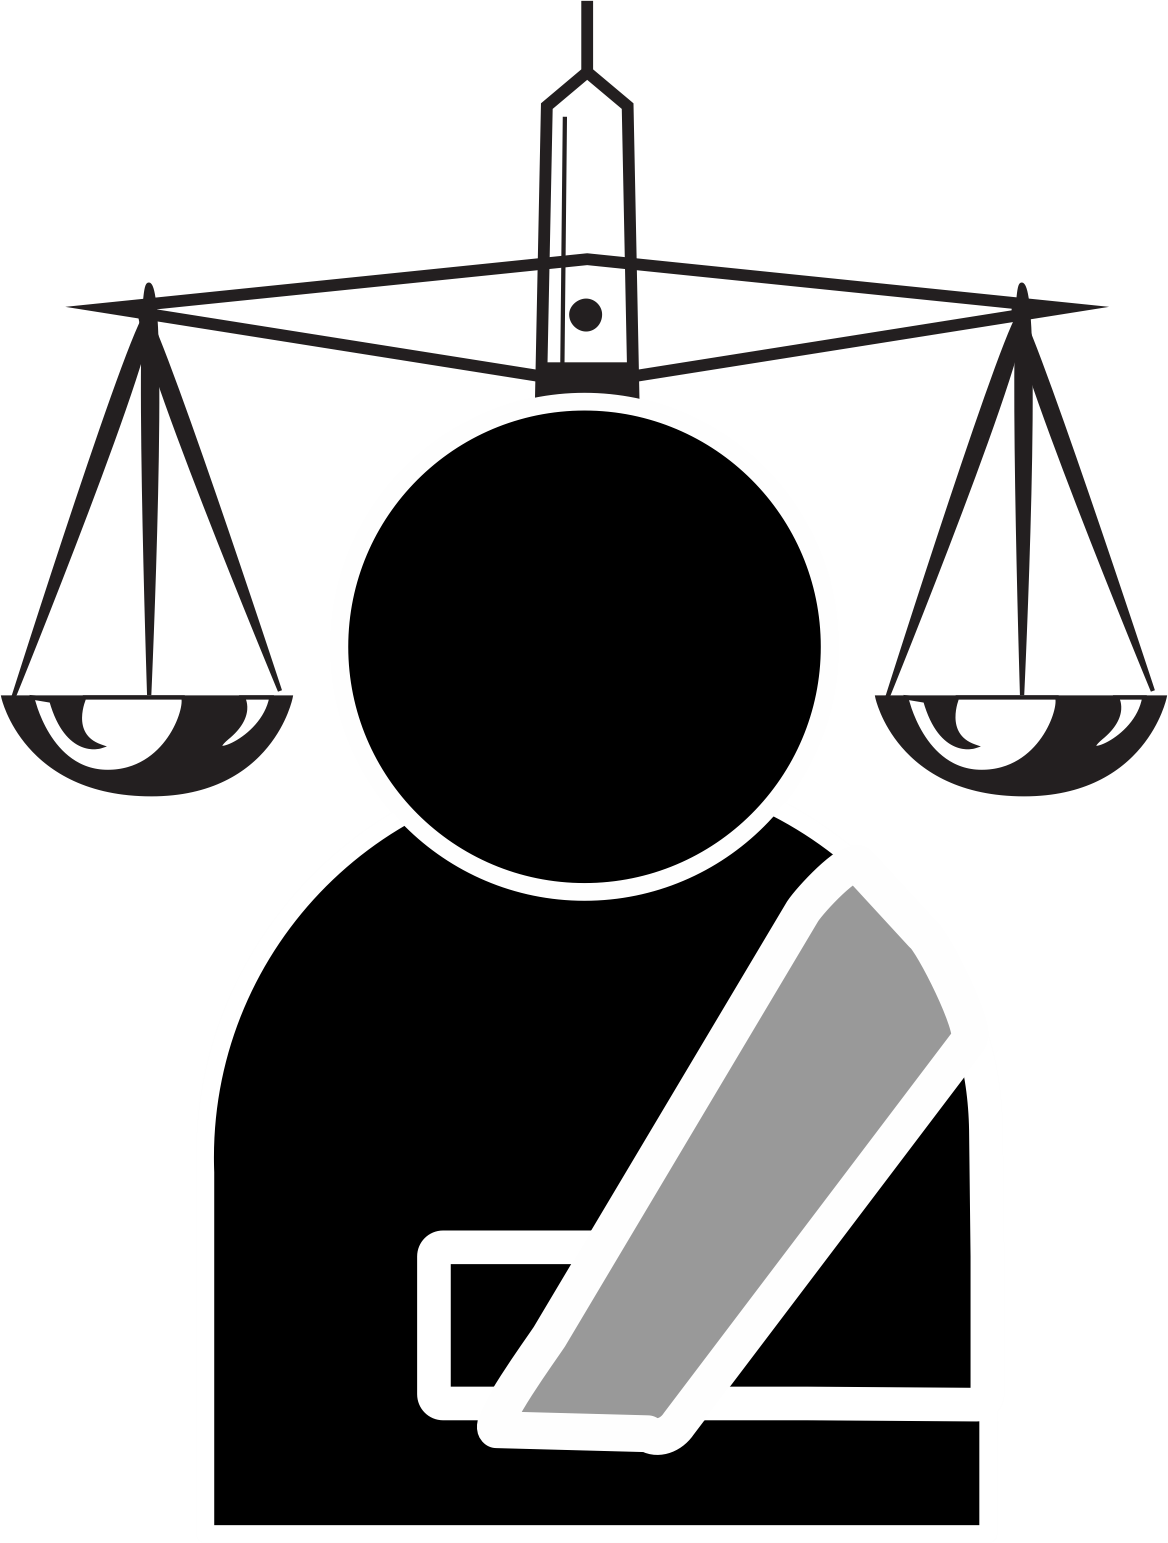 personal-injury-lawyer-clip-art-10131